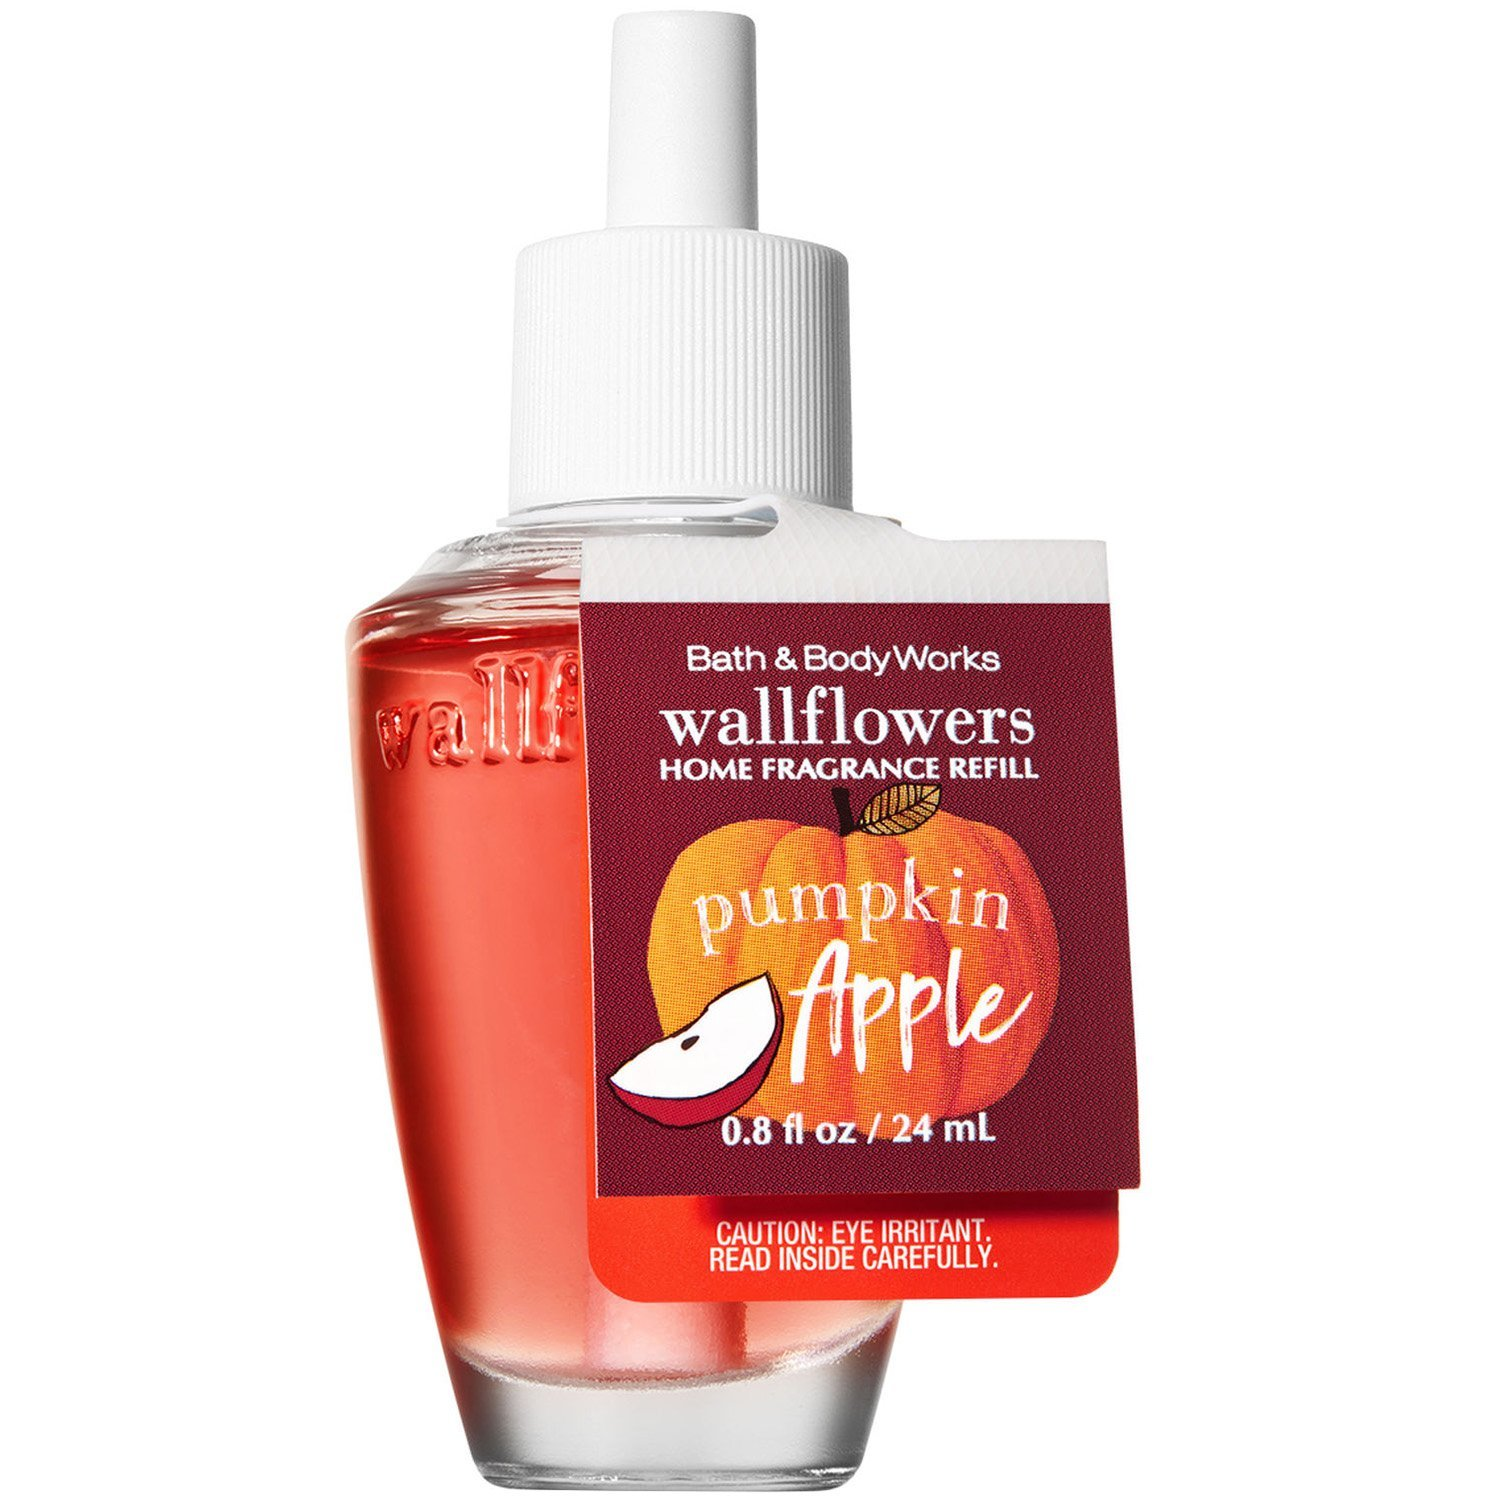 Bath and Body Works Pumpkin Apple Wallflowers Home Fragrance Refill 0.8 Fluid Ounce